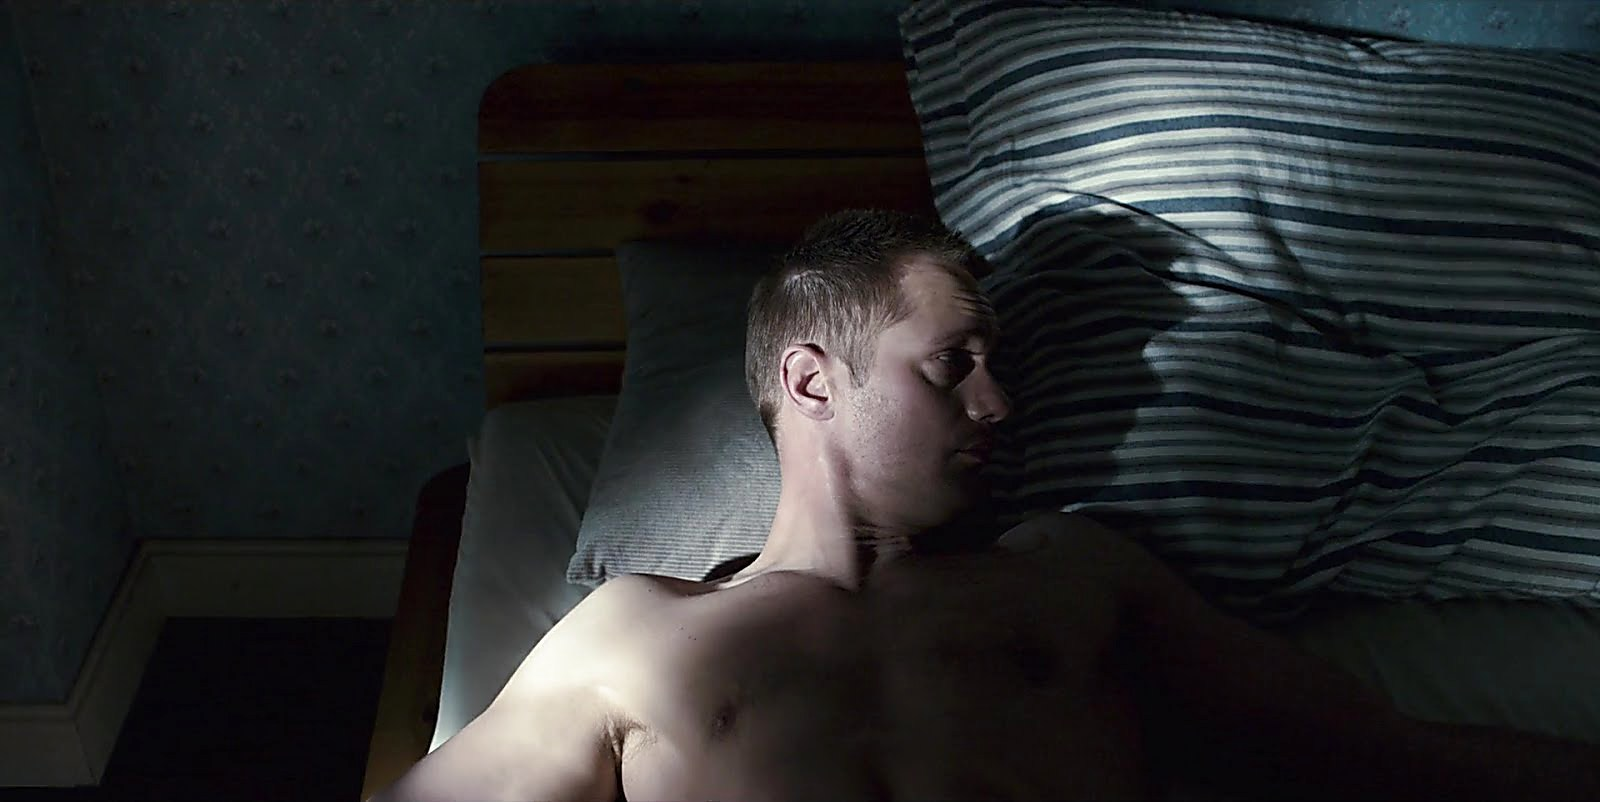 Alexander Skarsgard sexy shirtless scene February 24, 2018, 12pm